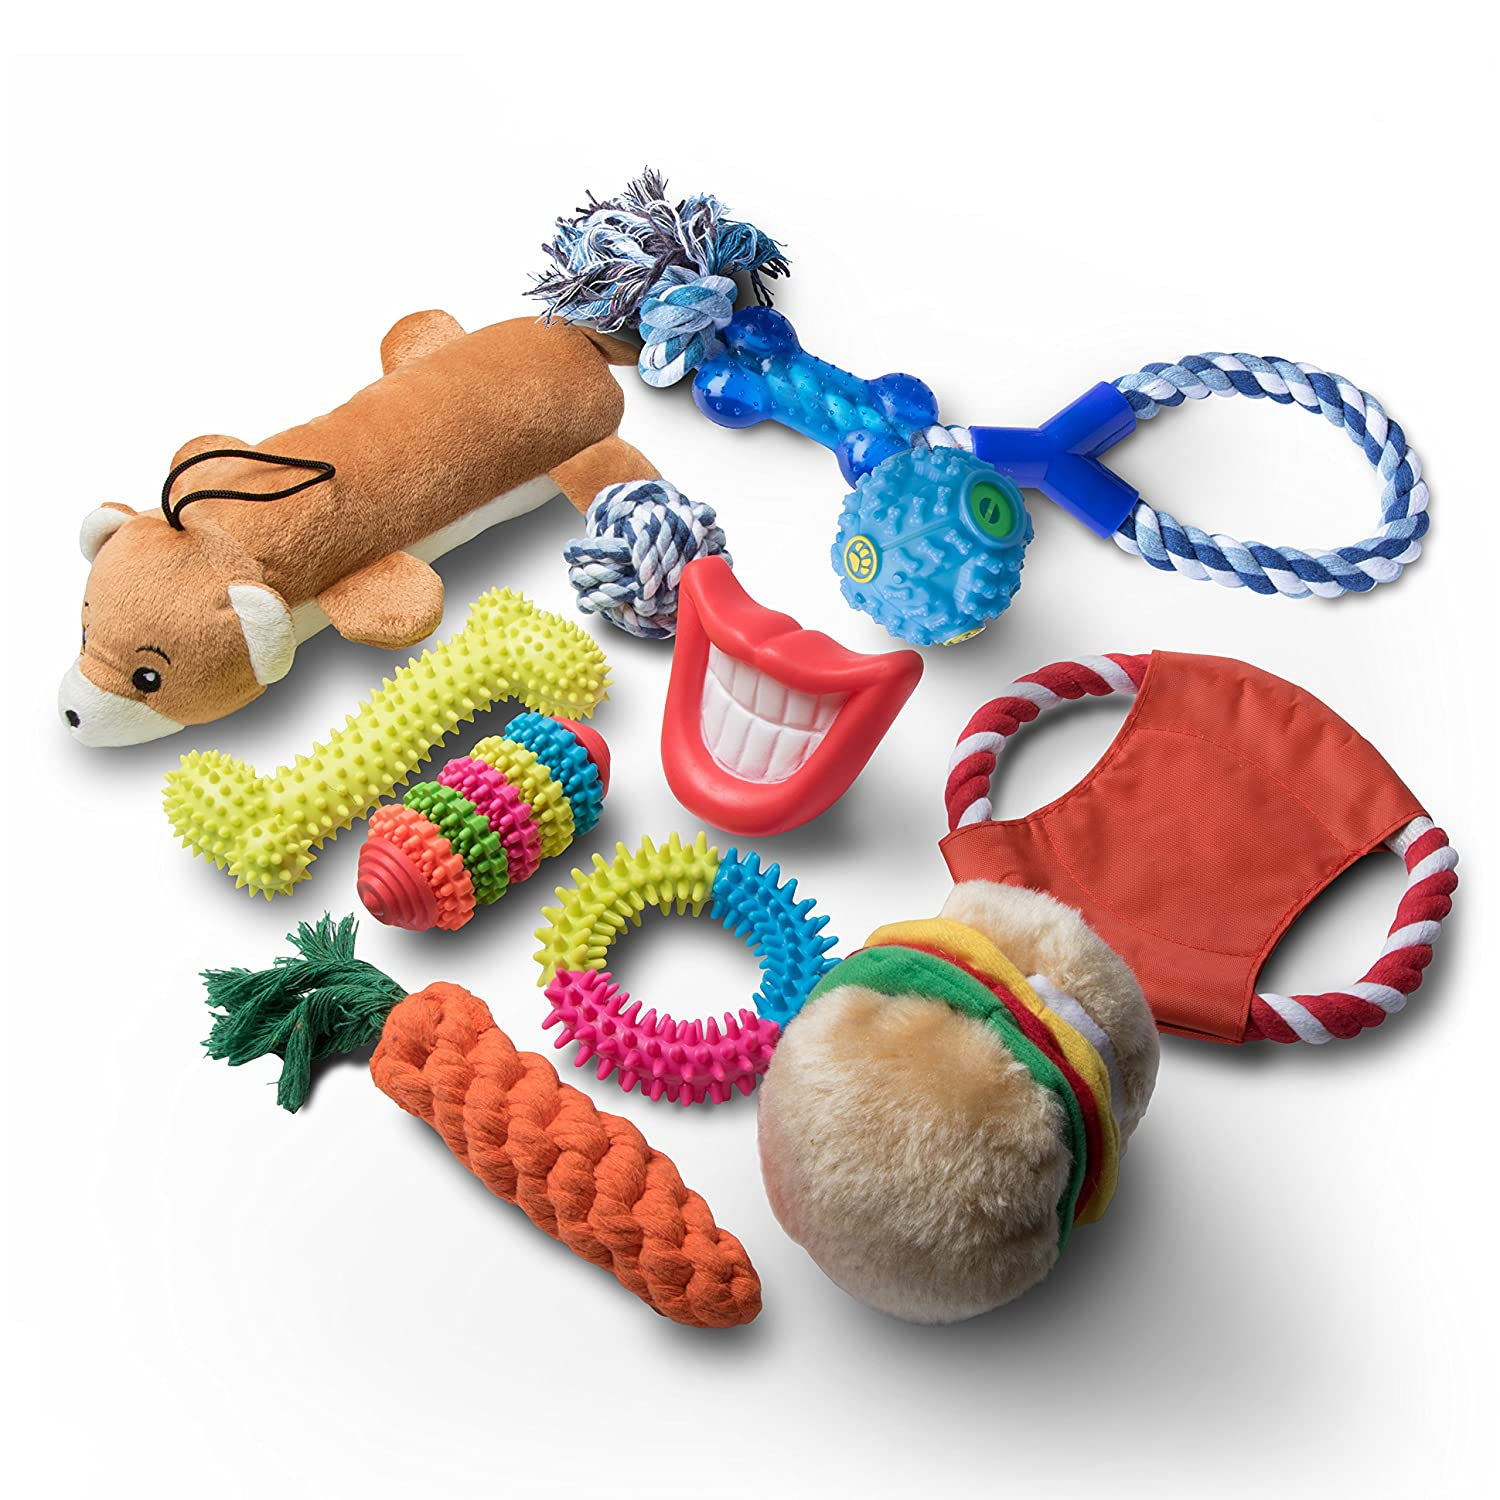 Pet Supplies Dog Toys and Puppy Toys 11 Piece Value Dog Toy